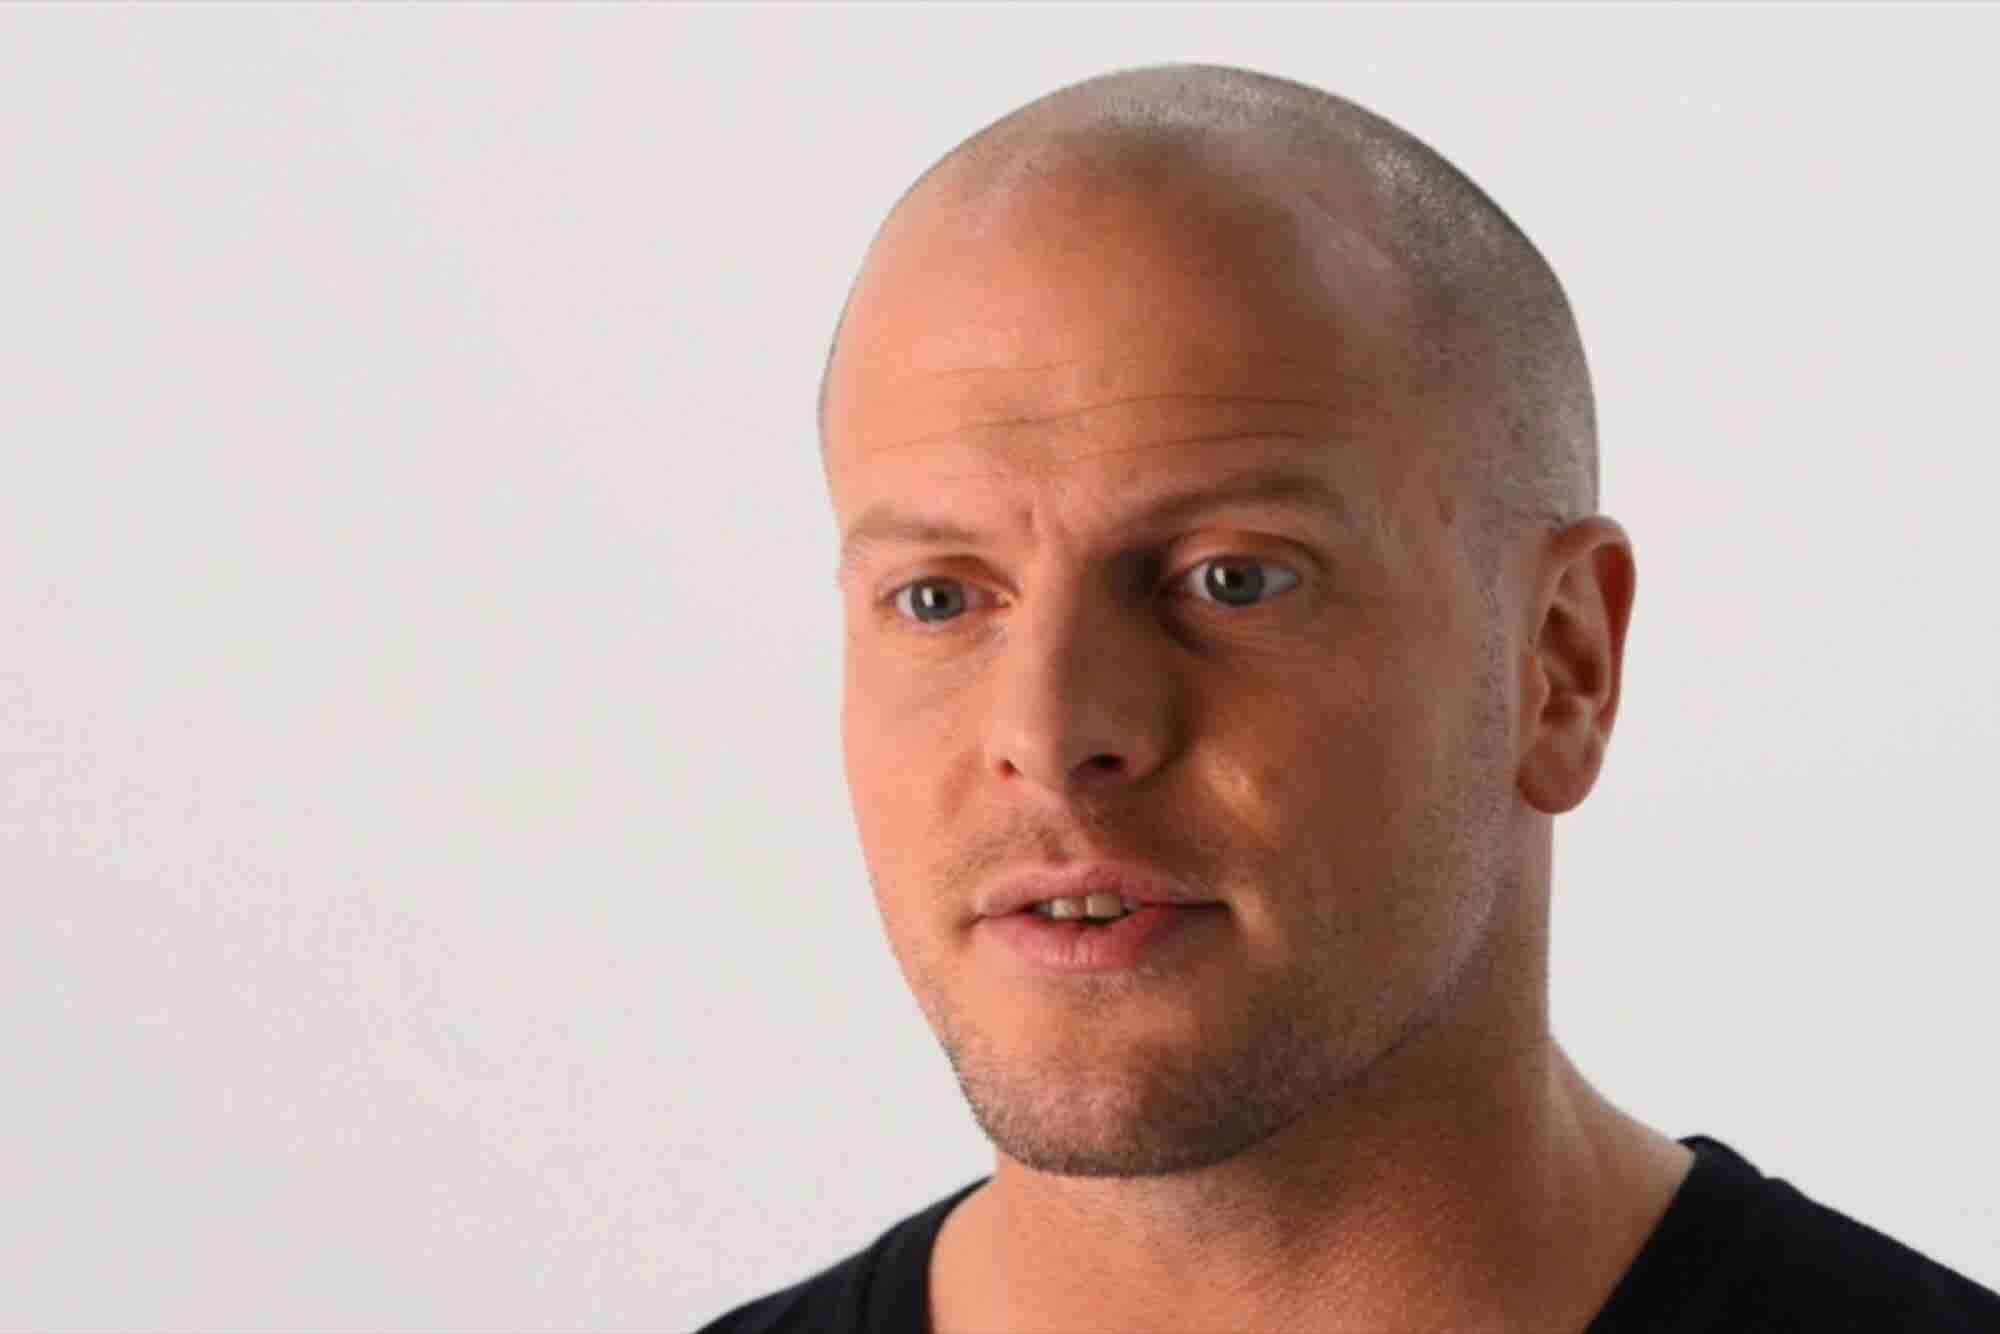 End the Day Right, According To Tim Ferriss